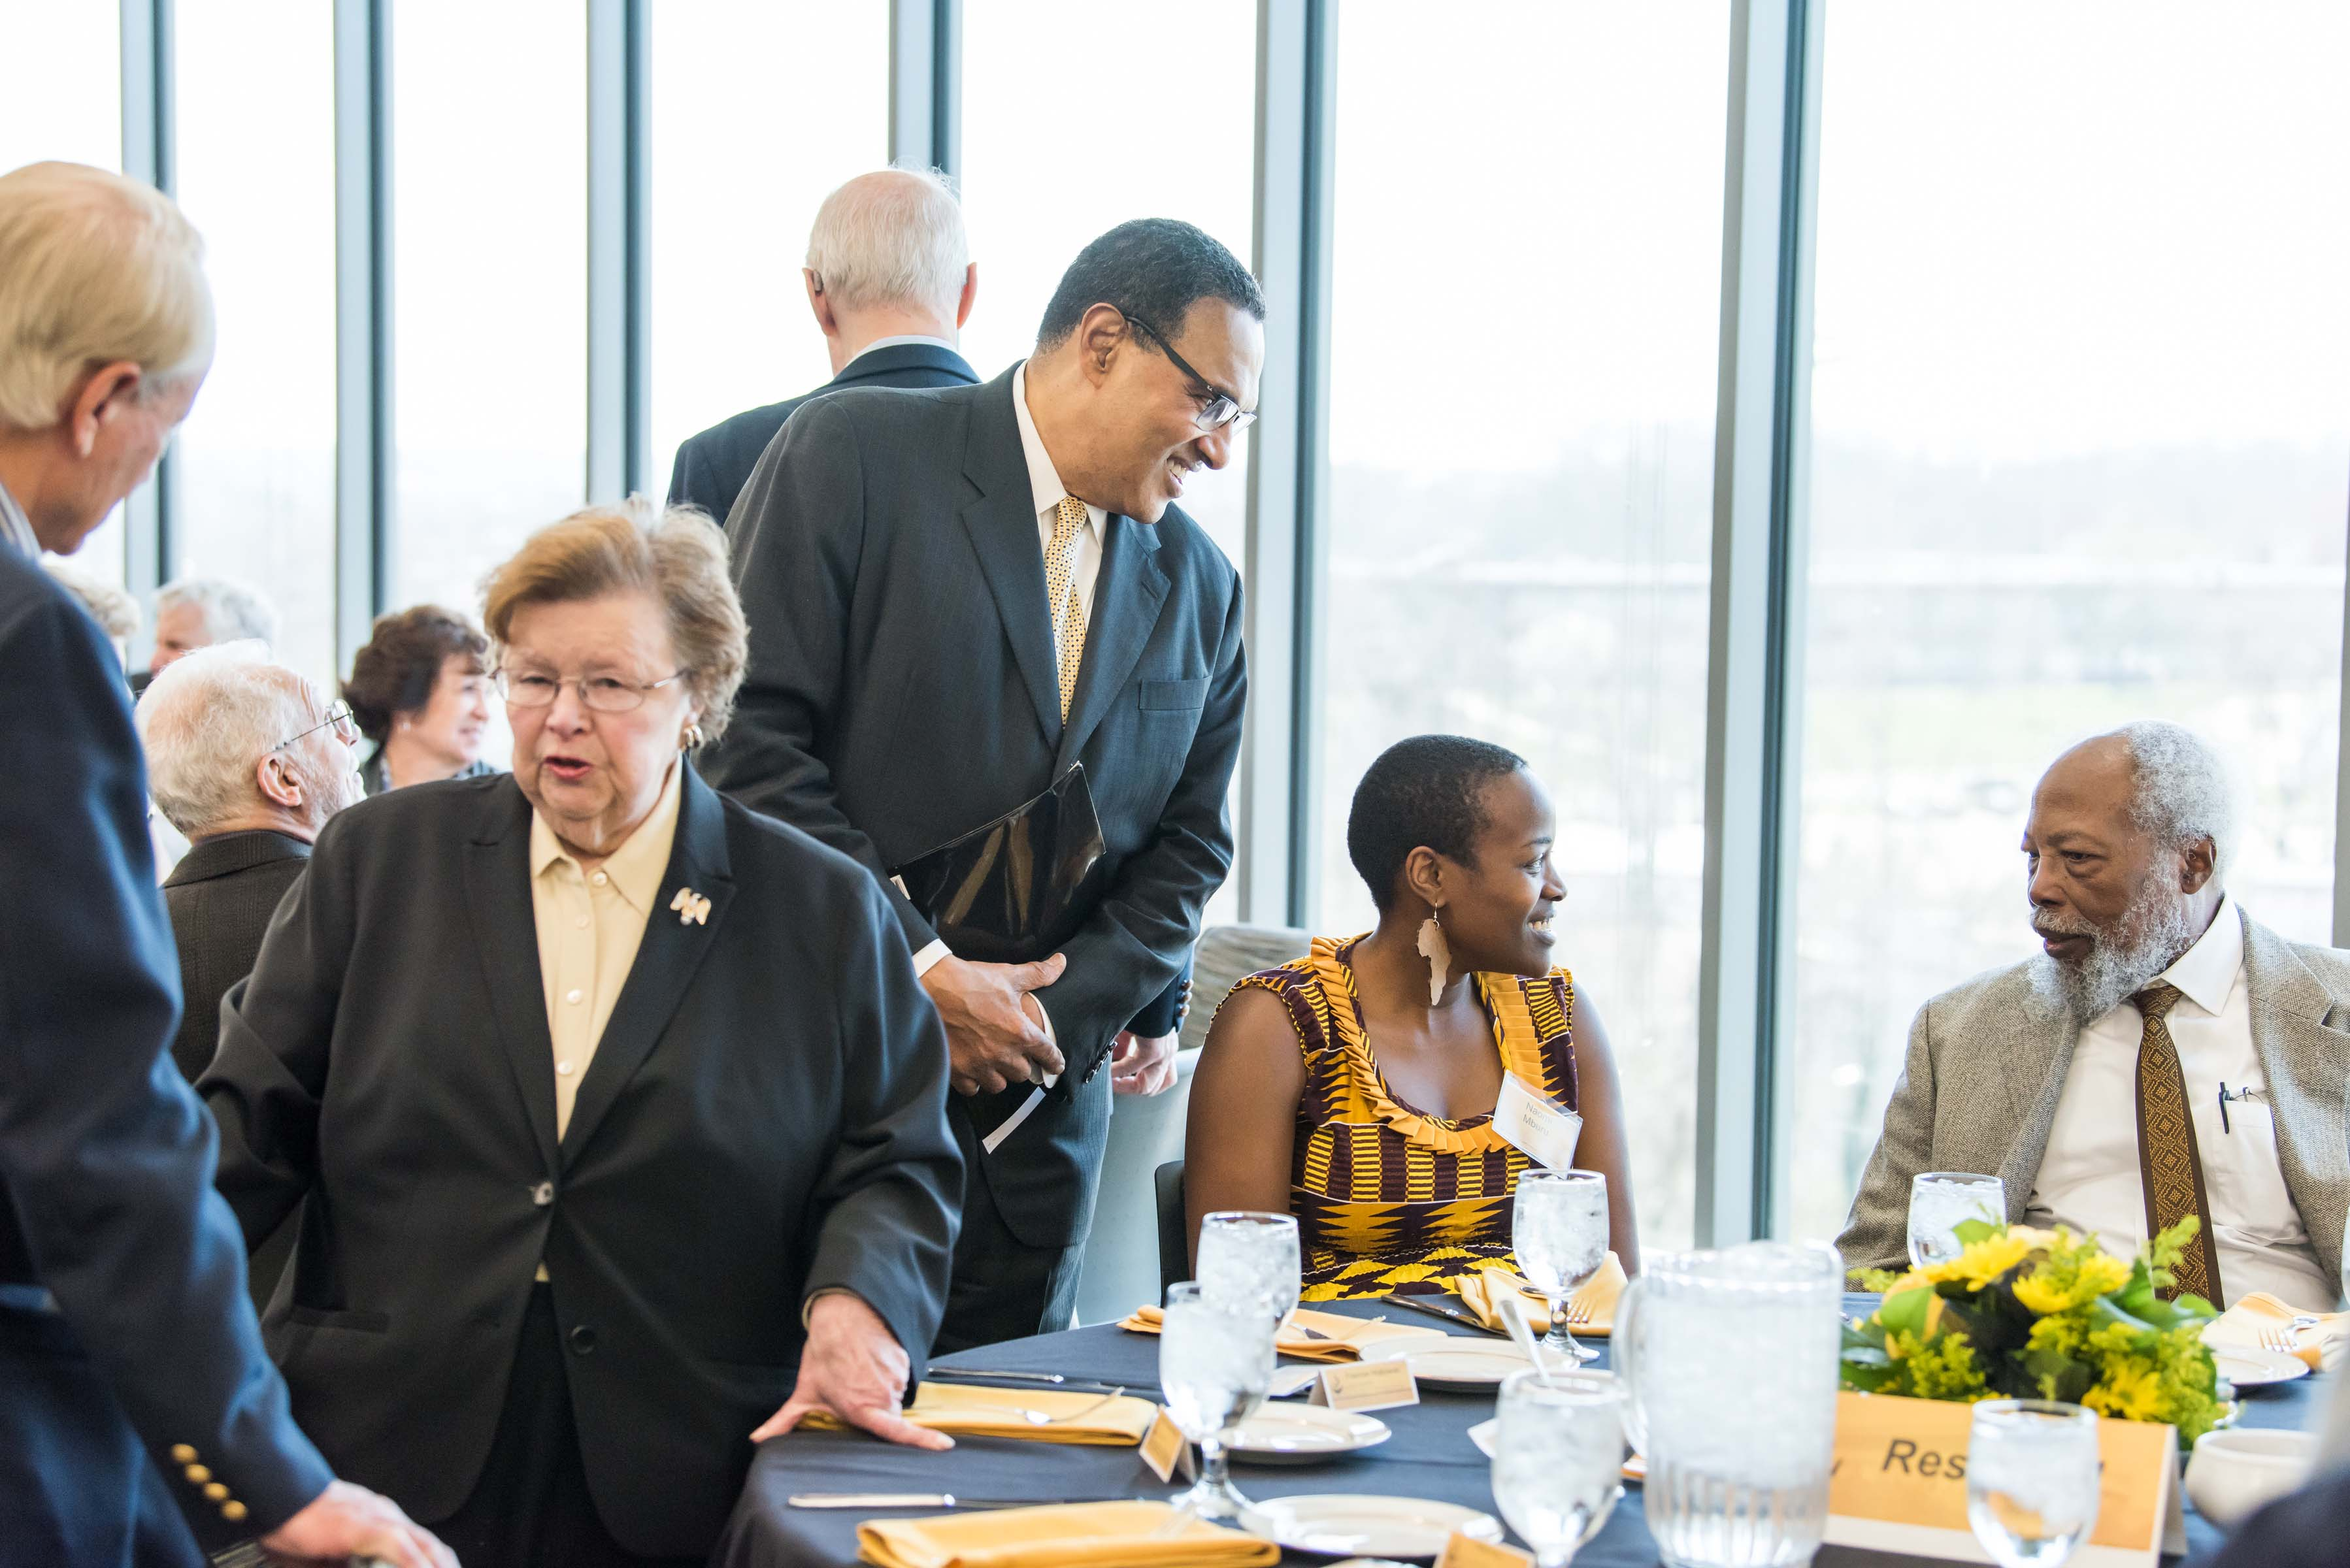 President Hrabowski joins conversation with Naomi Mburu and others at Wisdom Institute lunch